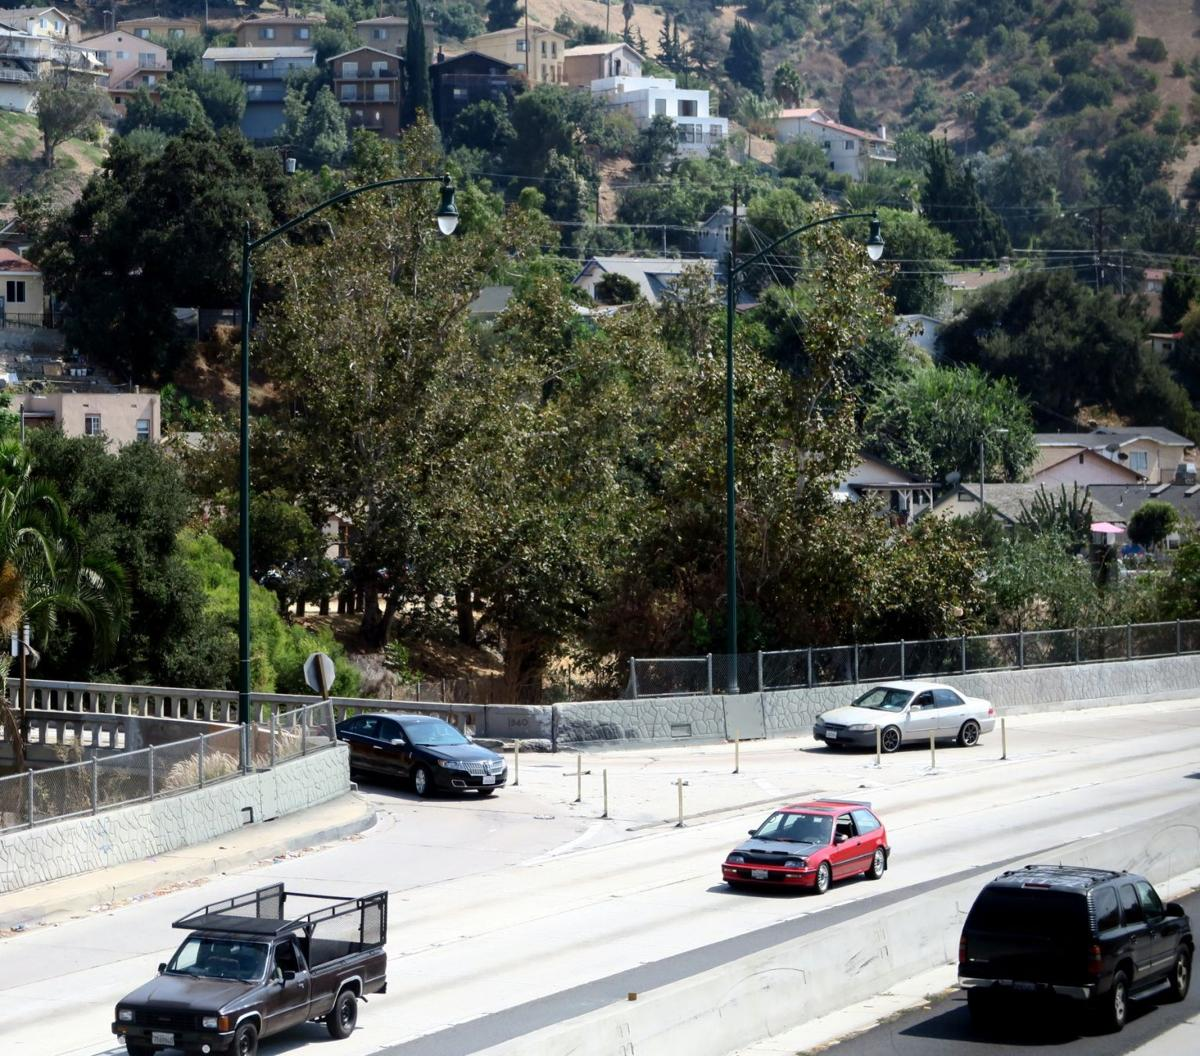 110 Freeway Arroyo Seco Parkway Highland Park Avenue 43 9-6-2019 2-34-46 PM.JPG